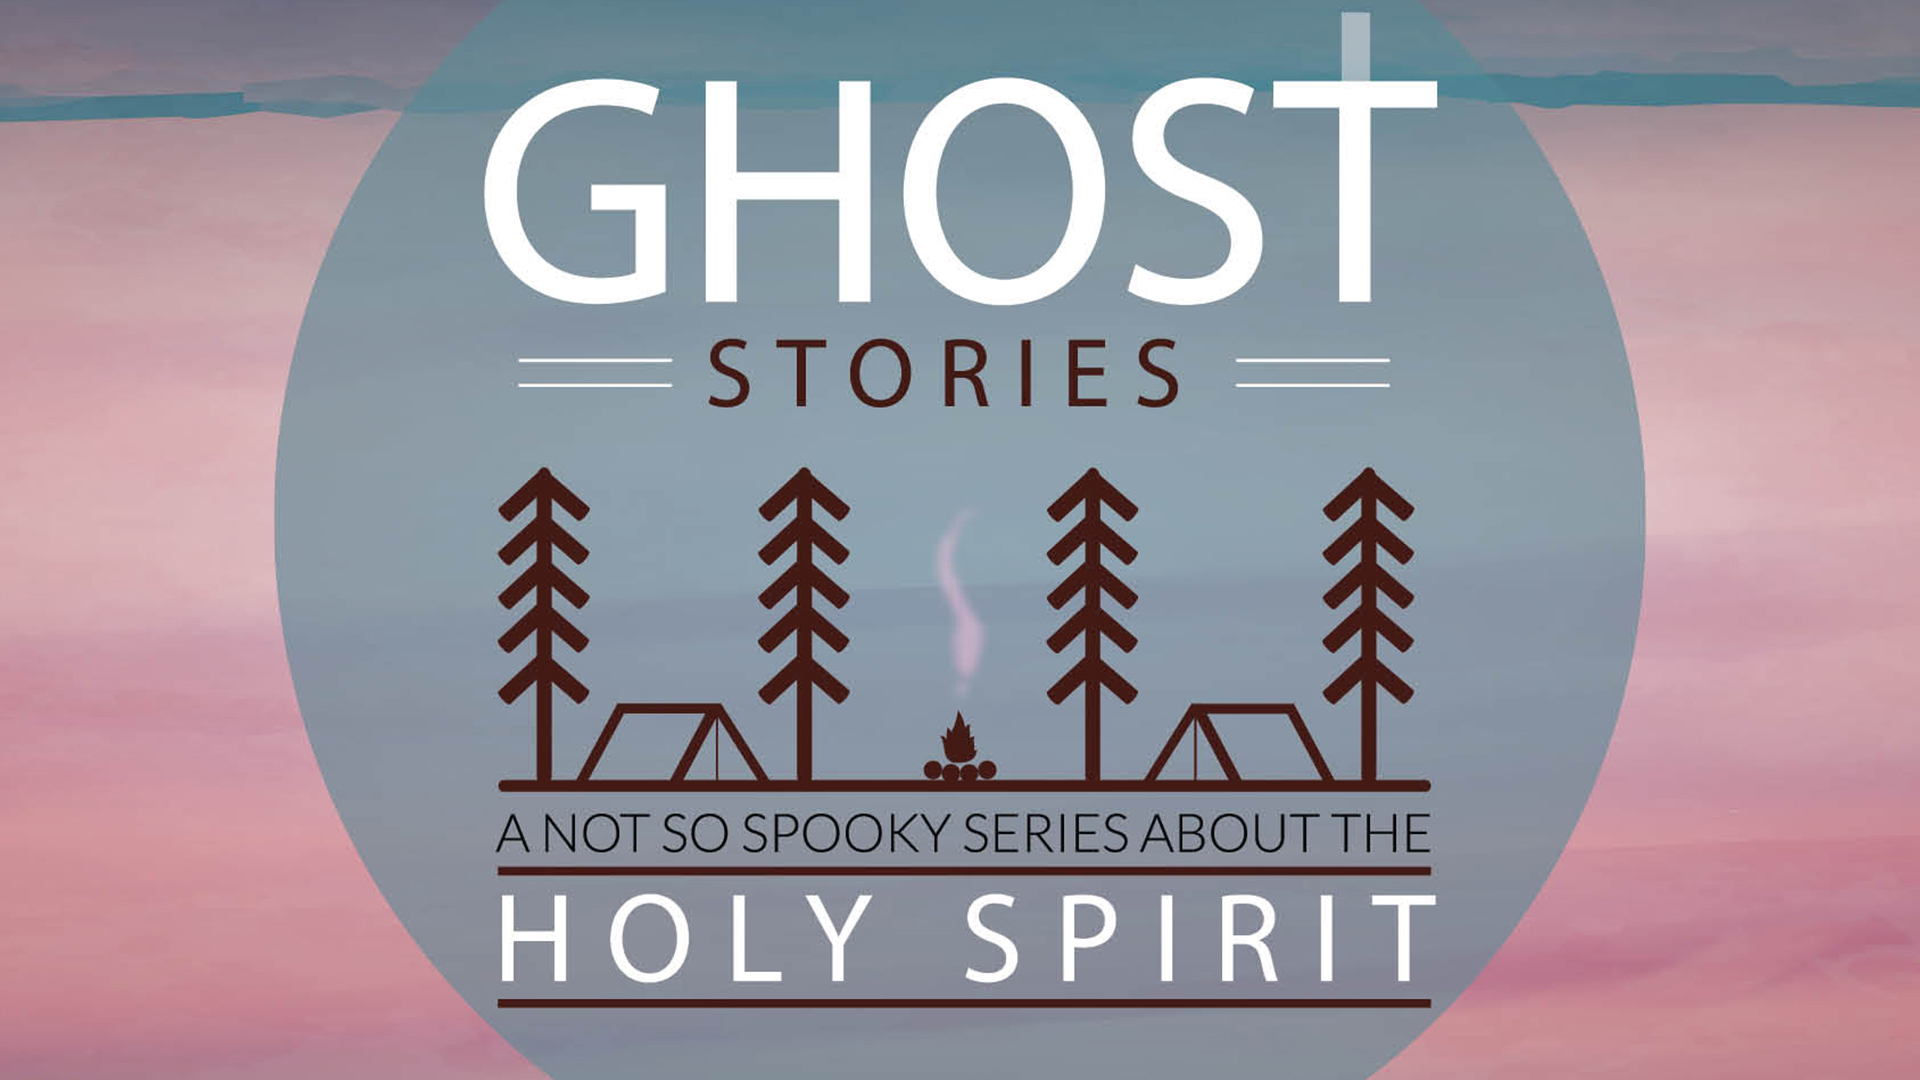 Ghost Stories  What do ghost stories have to do with living a life of power, peace and freedom? Find out in this not so spooky series about the Holy Spirit.   LISTEN TO SERMON >   -  Week 1 Notes   -  Week 2 Notes   -  Week 3 Notes   -  Week 4 Notes   -  Week 5 Notes